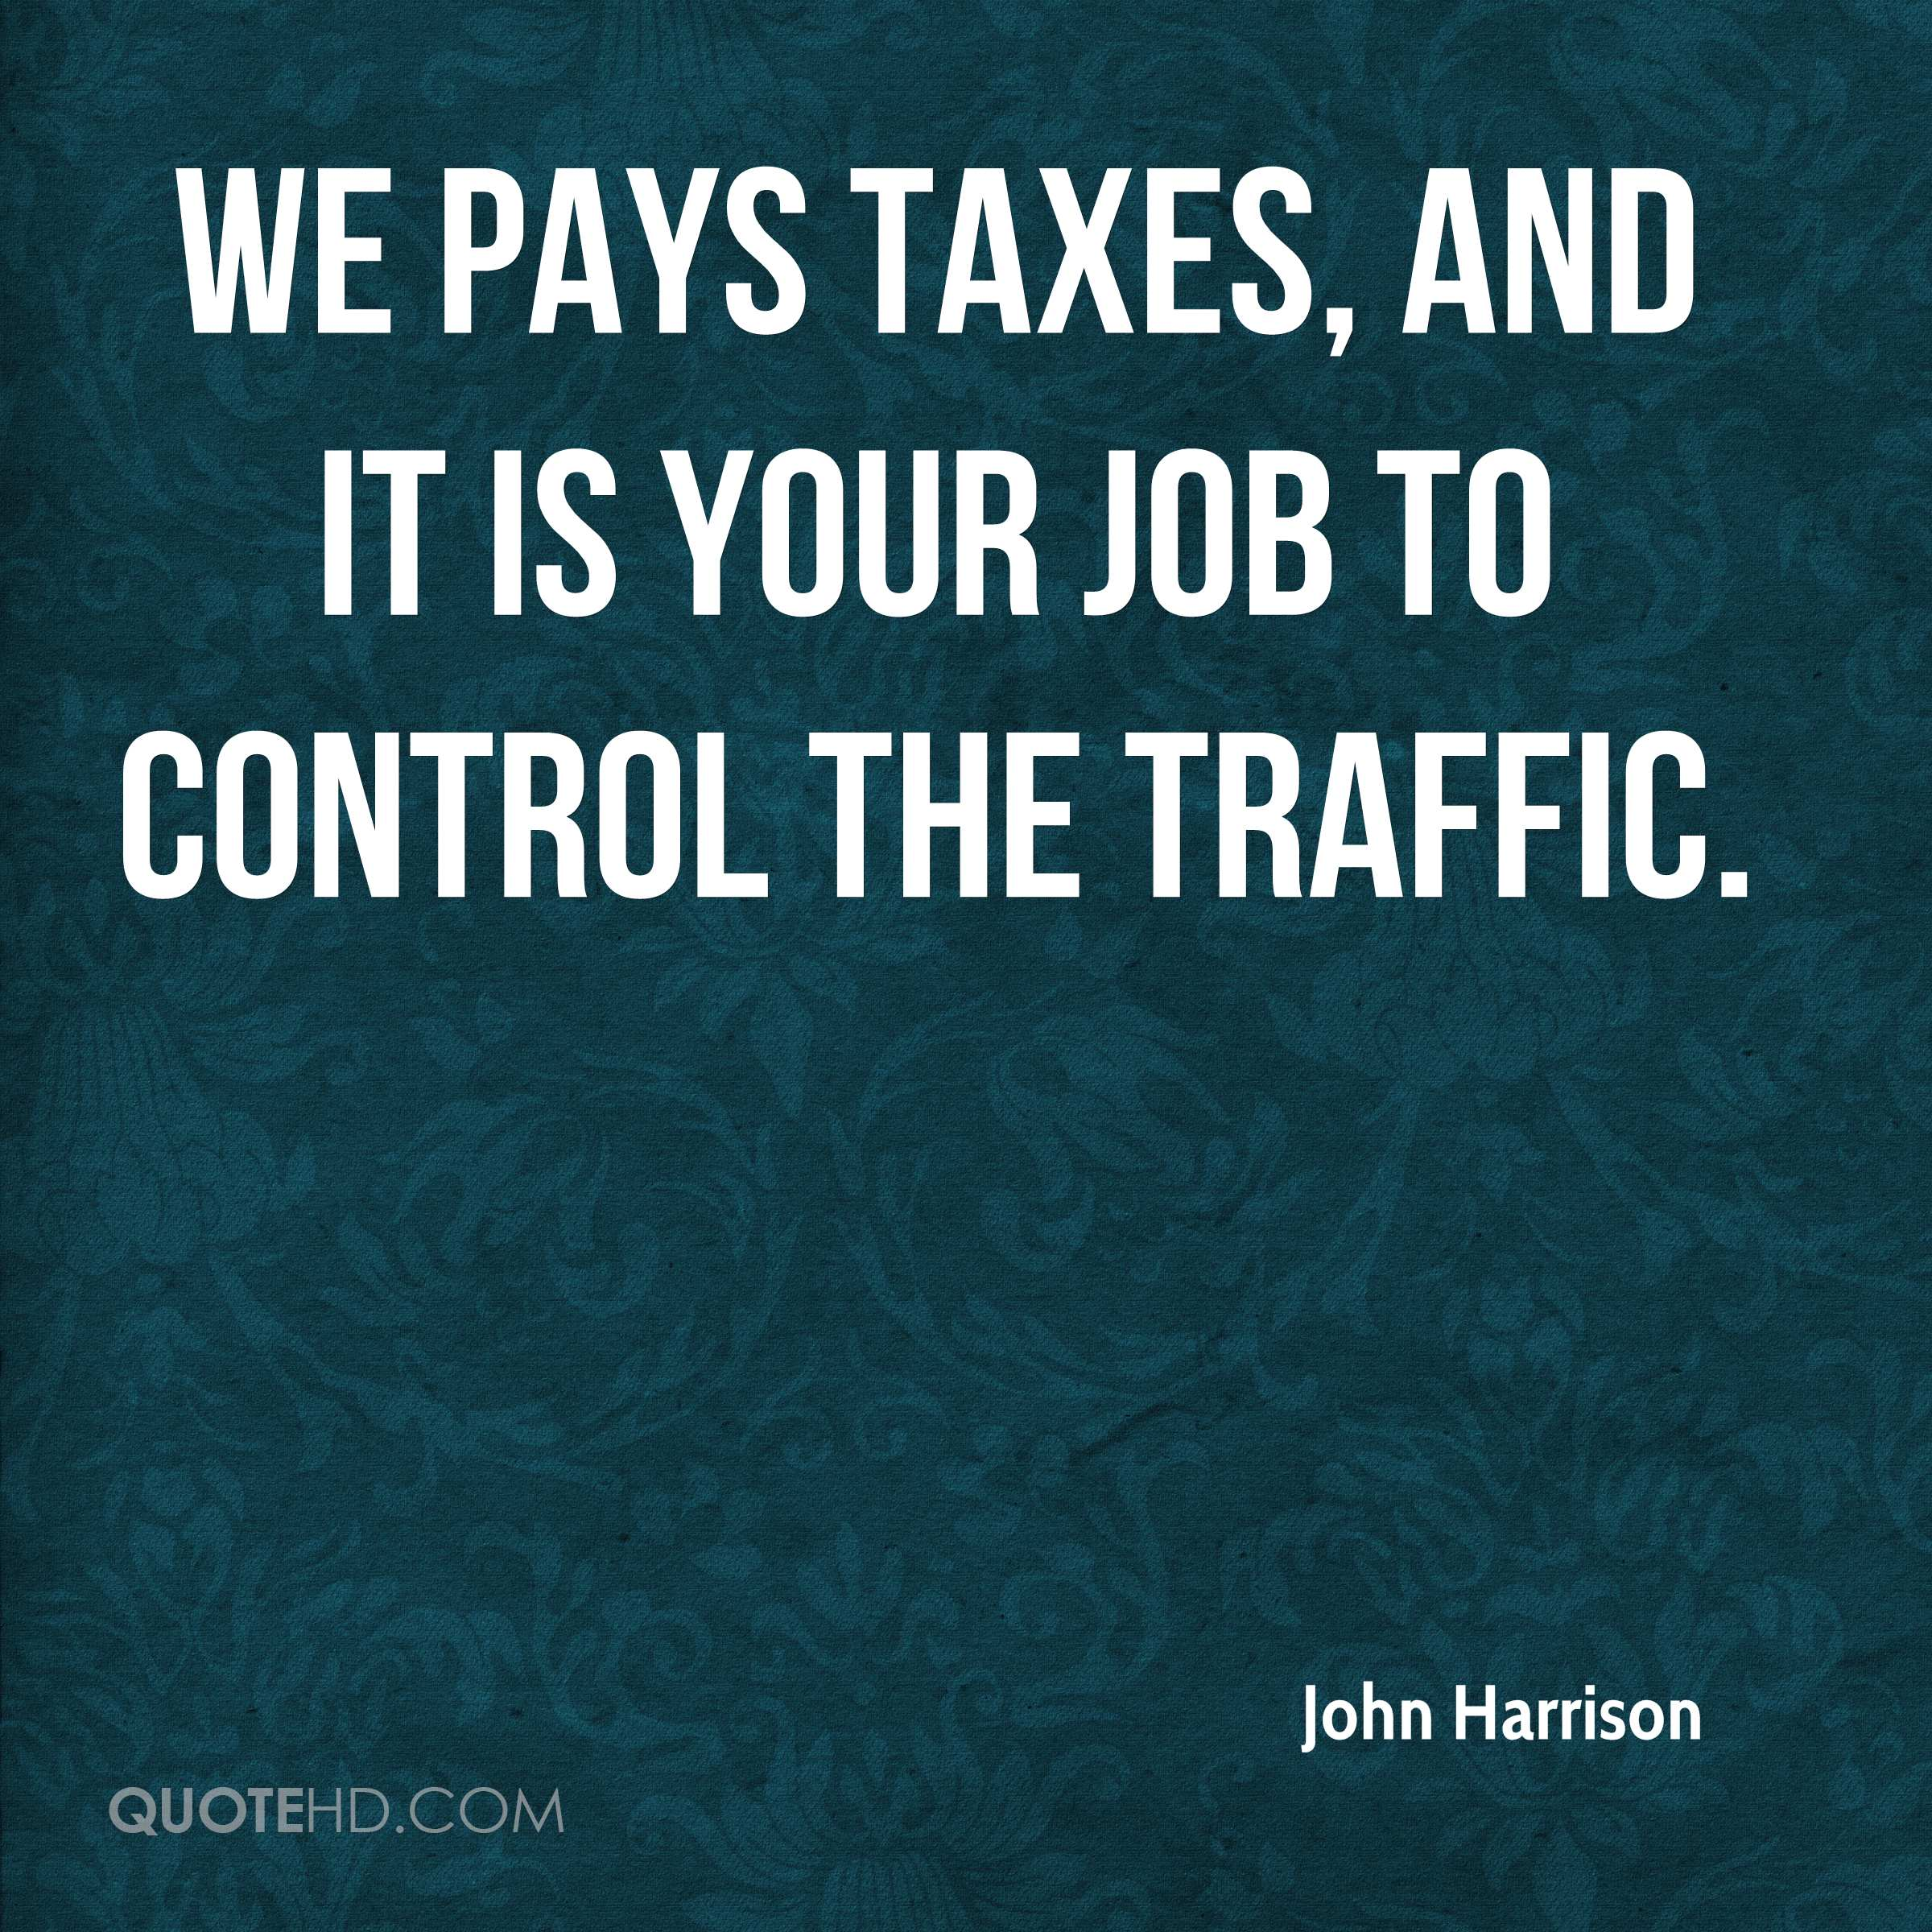 We pays taxes, and it is your job to control the traffic.